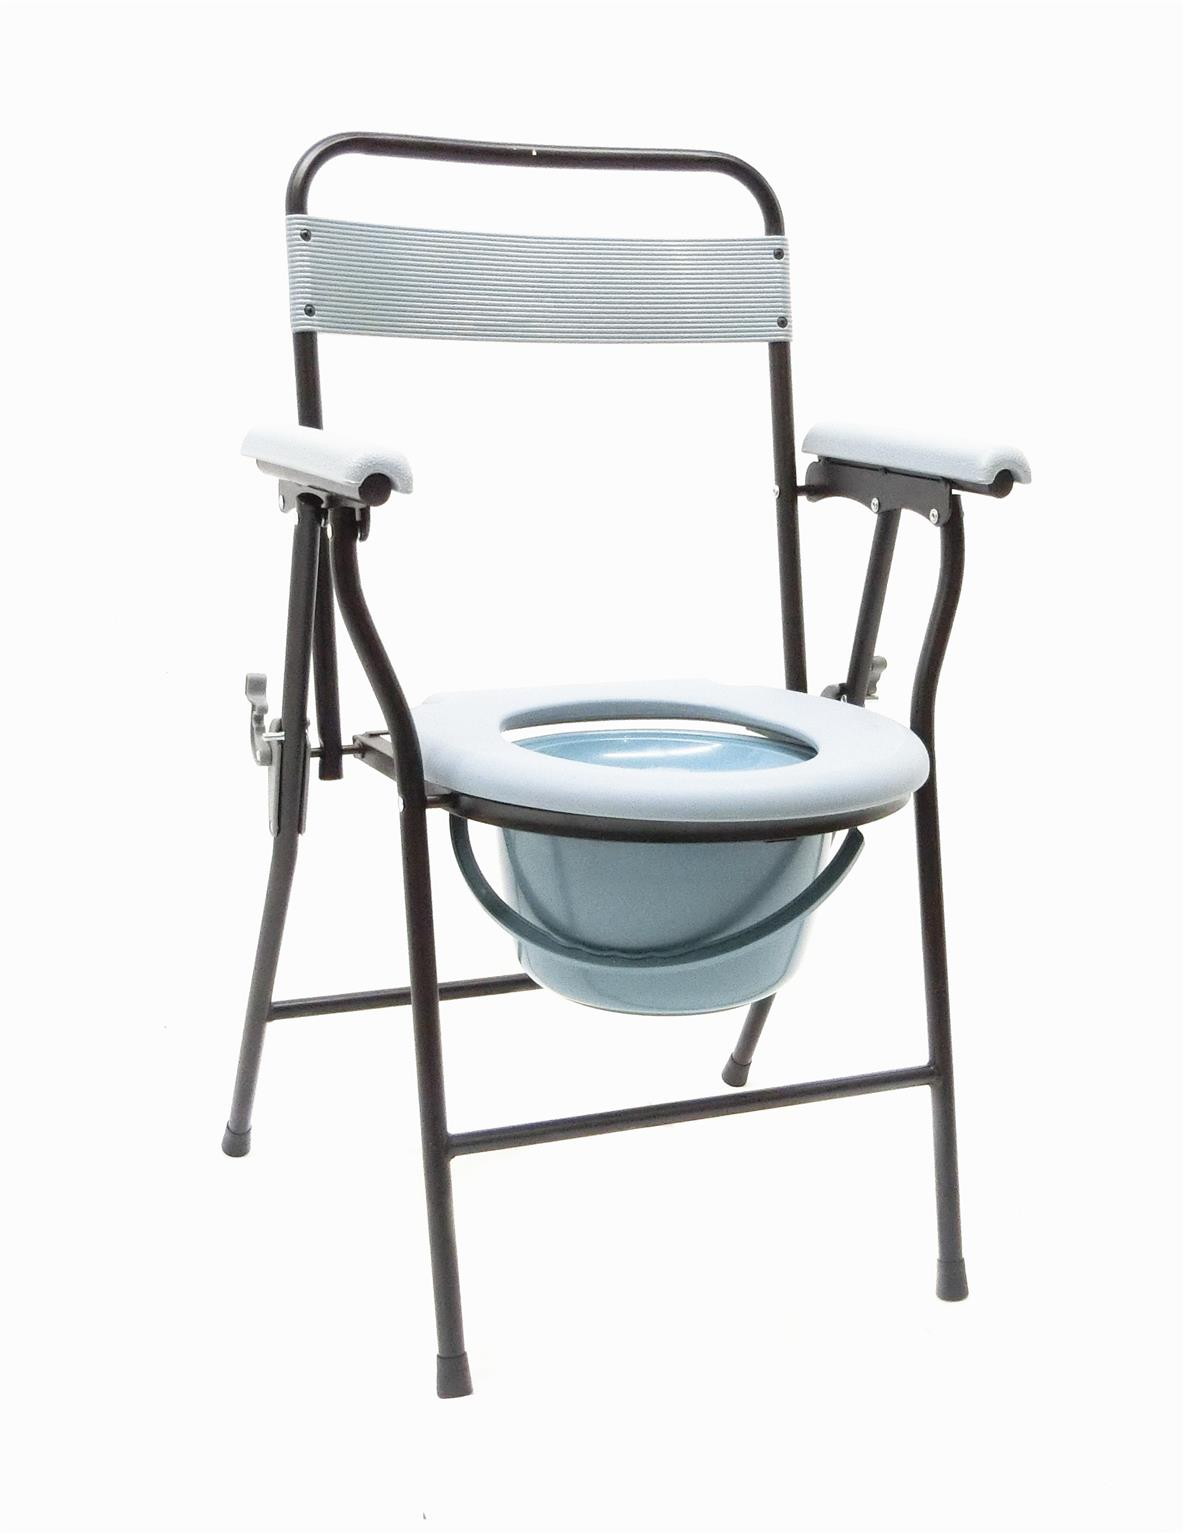 Folding Commode Chair Folding Commode Chair With Backrest End 7 31 2017 7 15 Pm